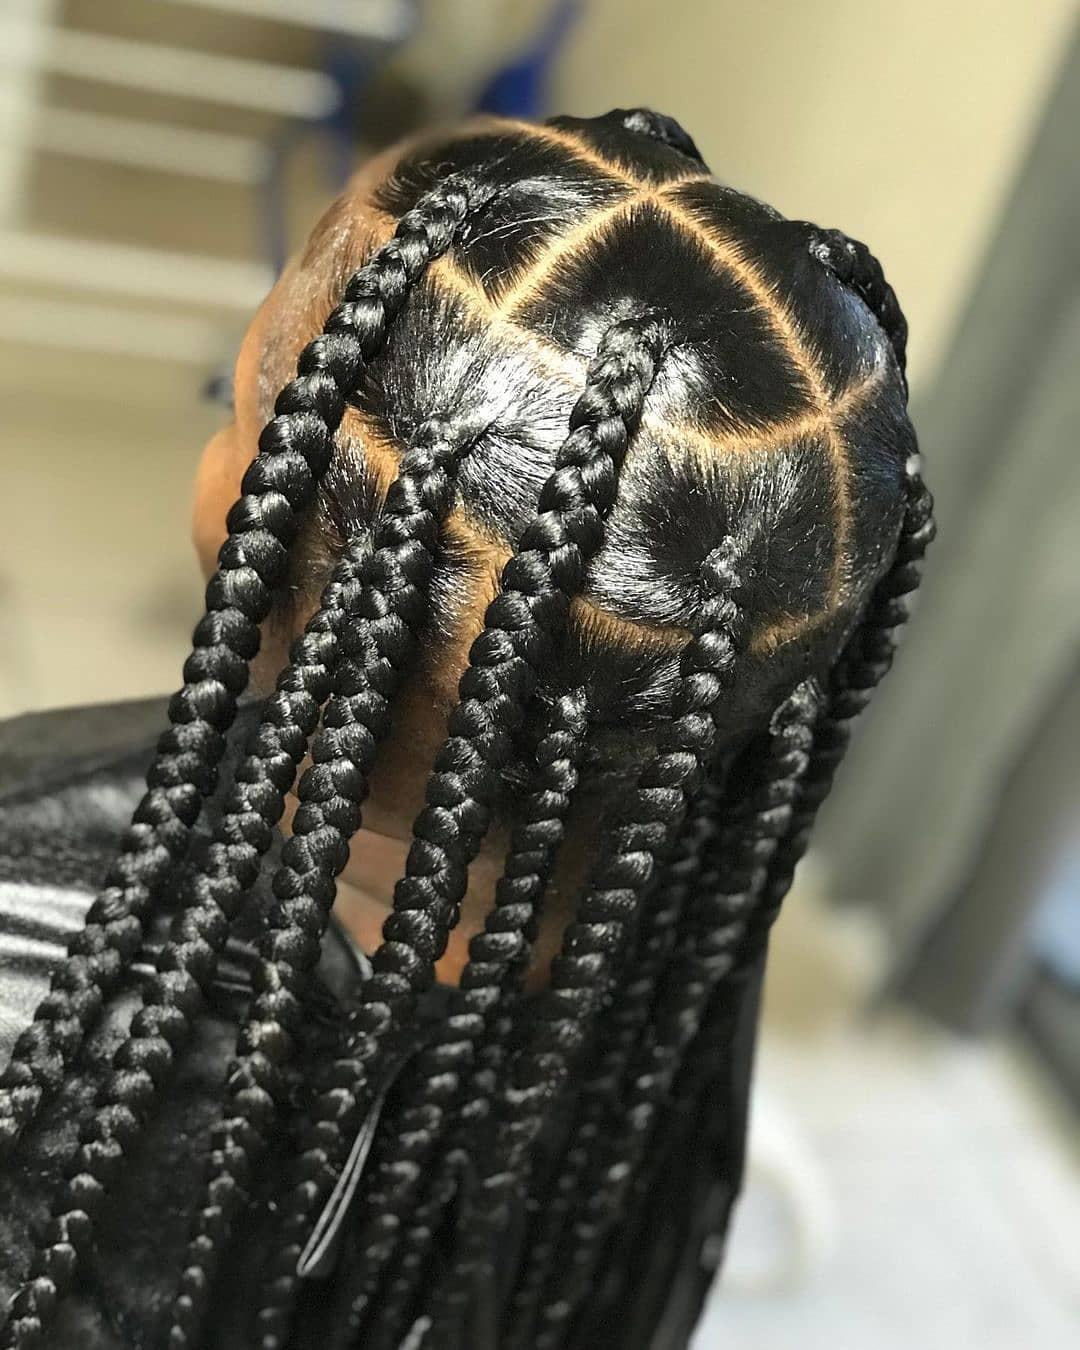 Latest African Braided Hairstyles 2021: Top 10 Braid ...